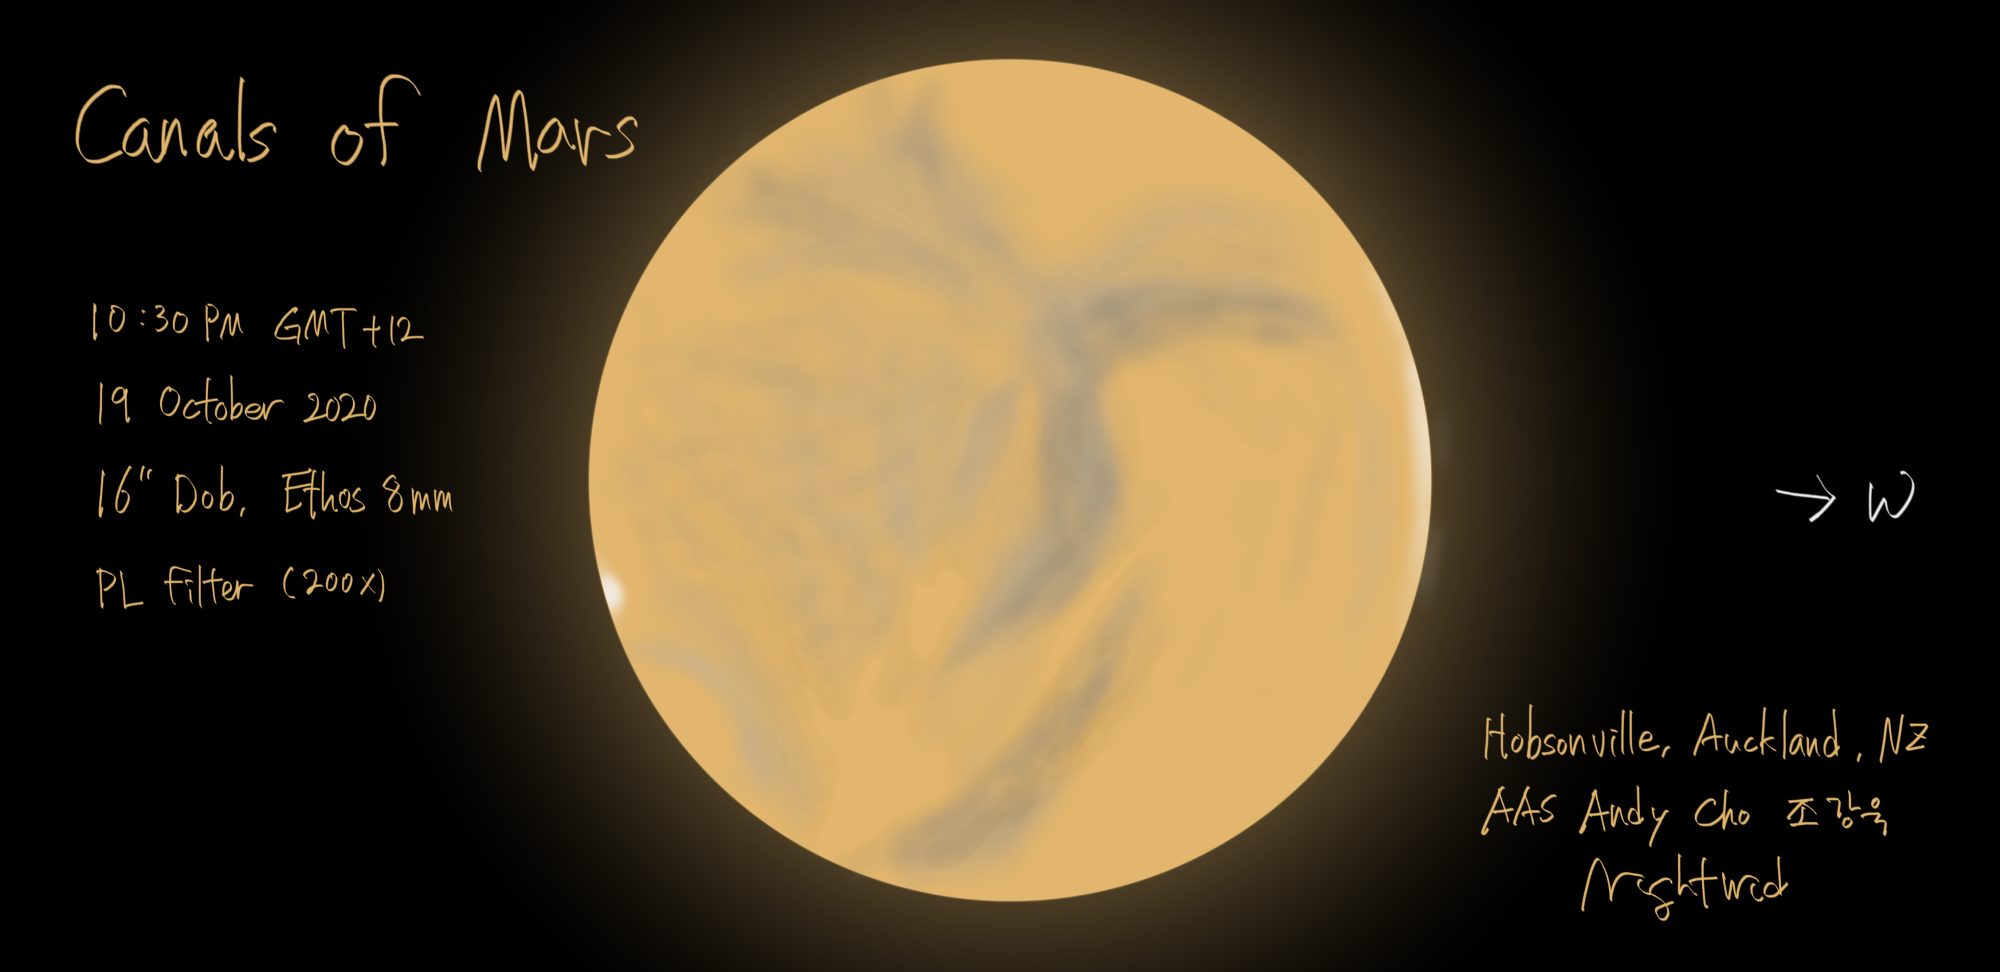 2000_Canals of Mars 19 Oct 2020.png